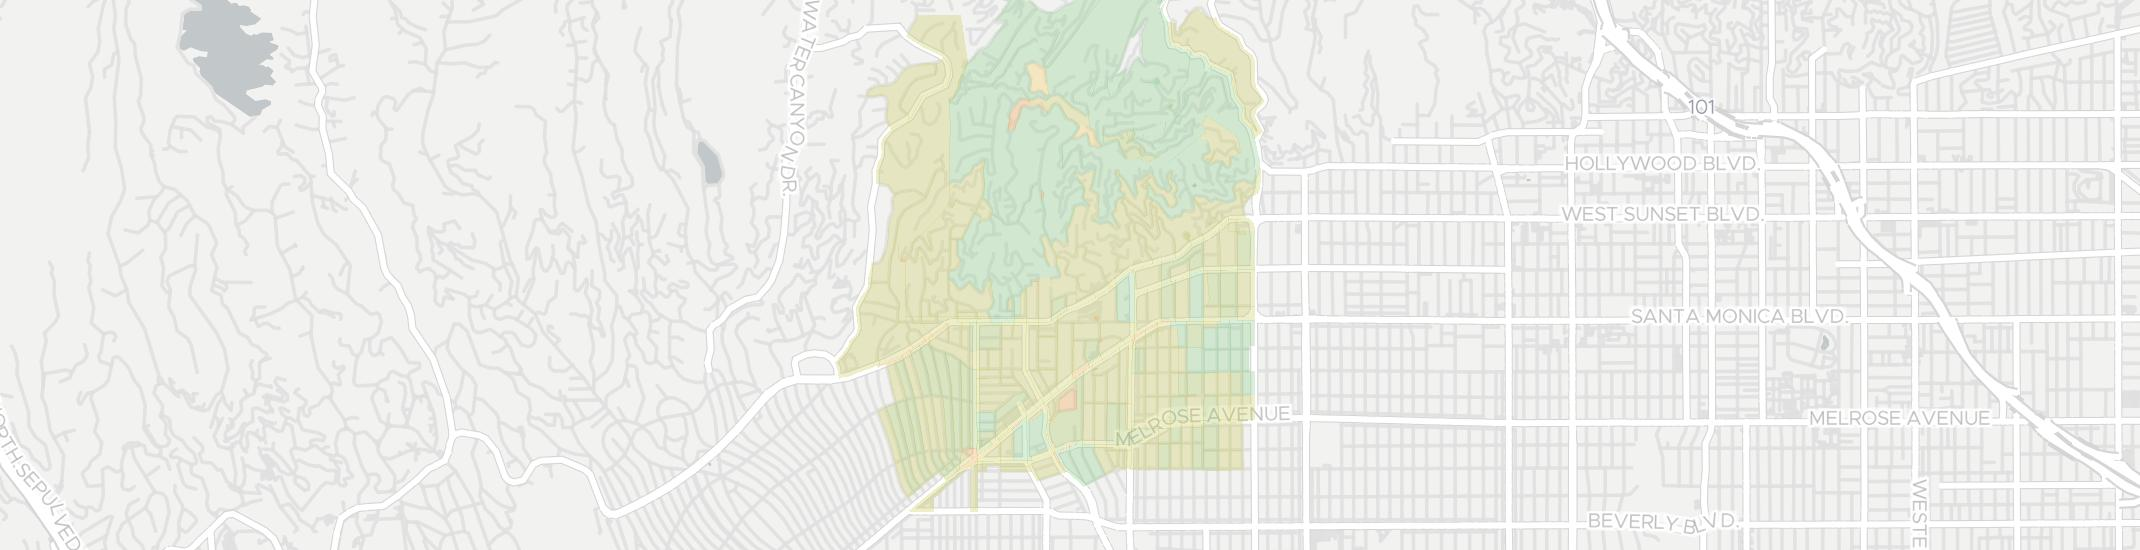 Internet Providers in West Hollywood: Compare 23 Providers on map of tarzana ca.91356, palisade high school california, map of north hollywood ca, map of west hollywood boundaries, map of north west hollywood, map of glendive montana, map of los angeles county, map of in los angeles 90049, map of warren rhode island, map of tinley park illinois, map of la and hollywood, map of smithfield rhode island, map of hollywood hills california, map of washington pennsylvania,